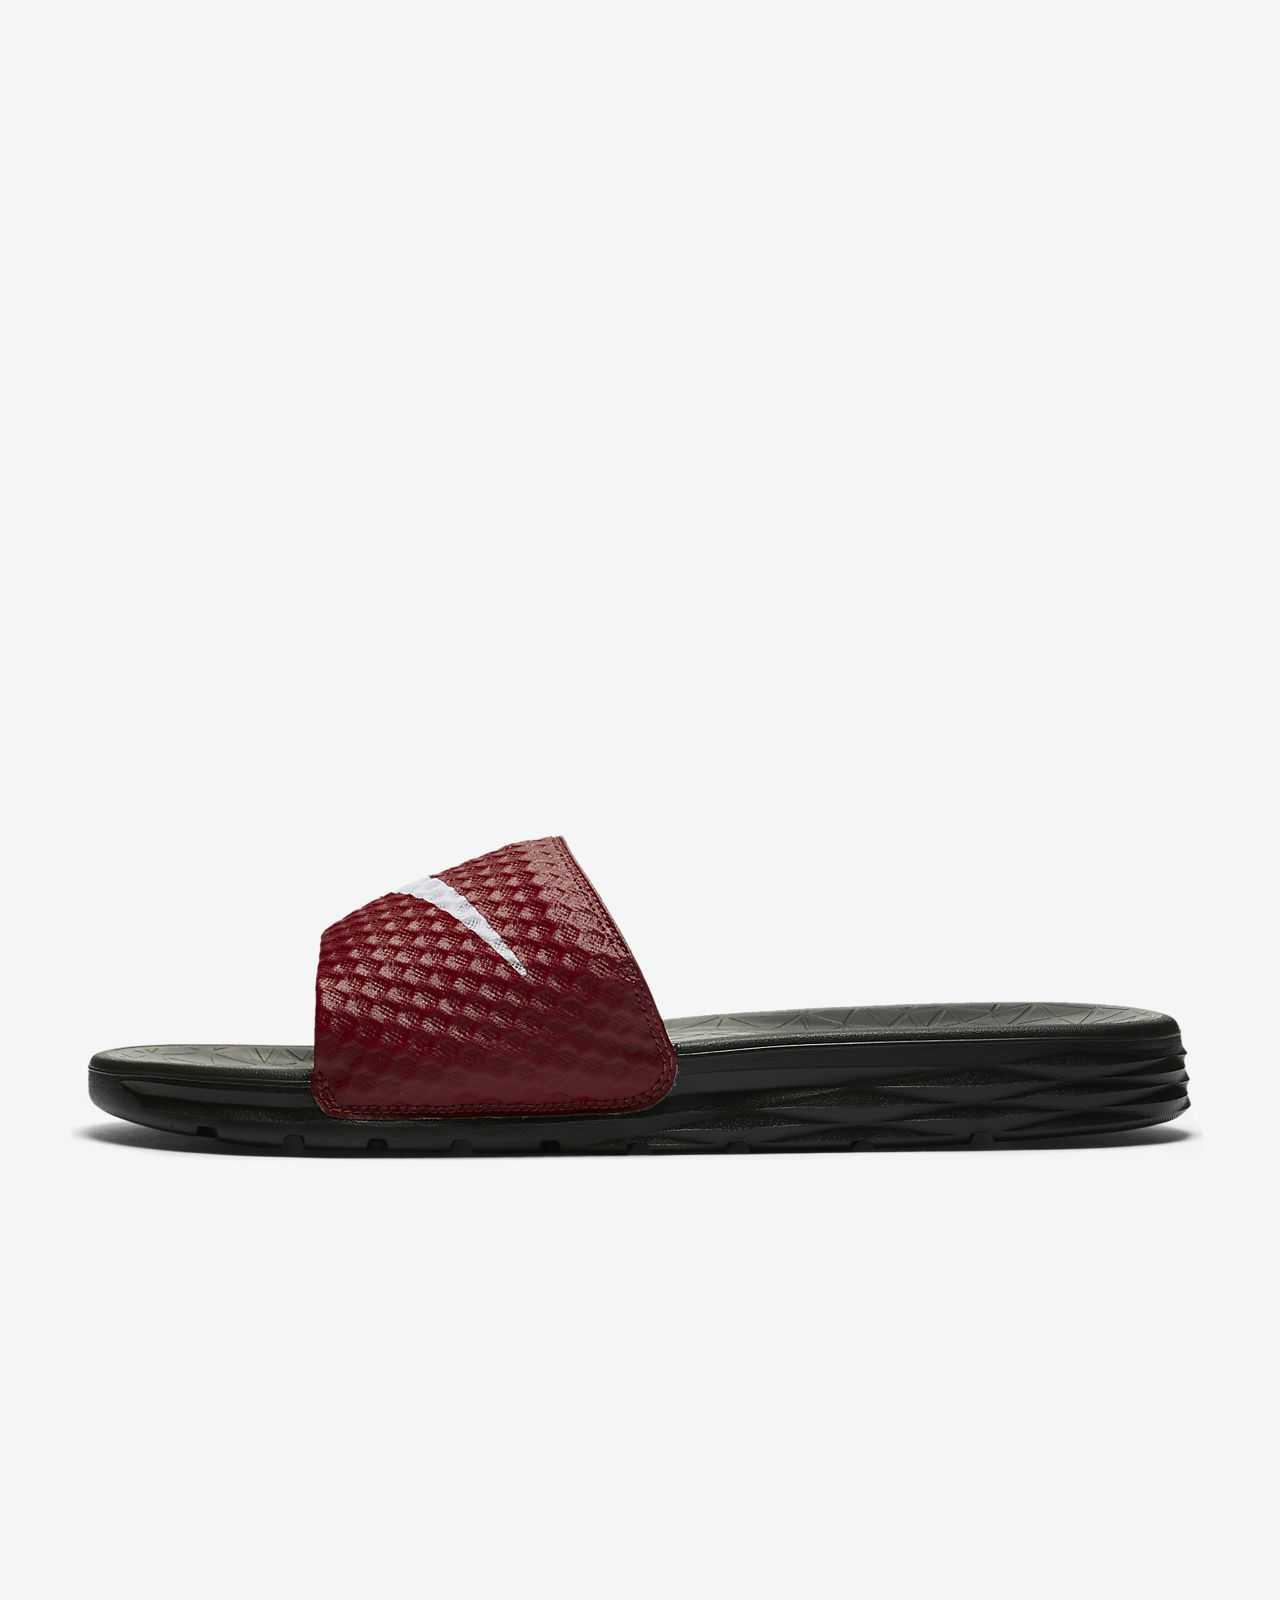 hot-selling complimentary shipping good Nike Benassi Solarsoft 2 Men's Slide